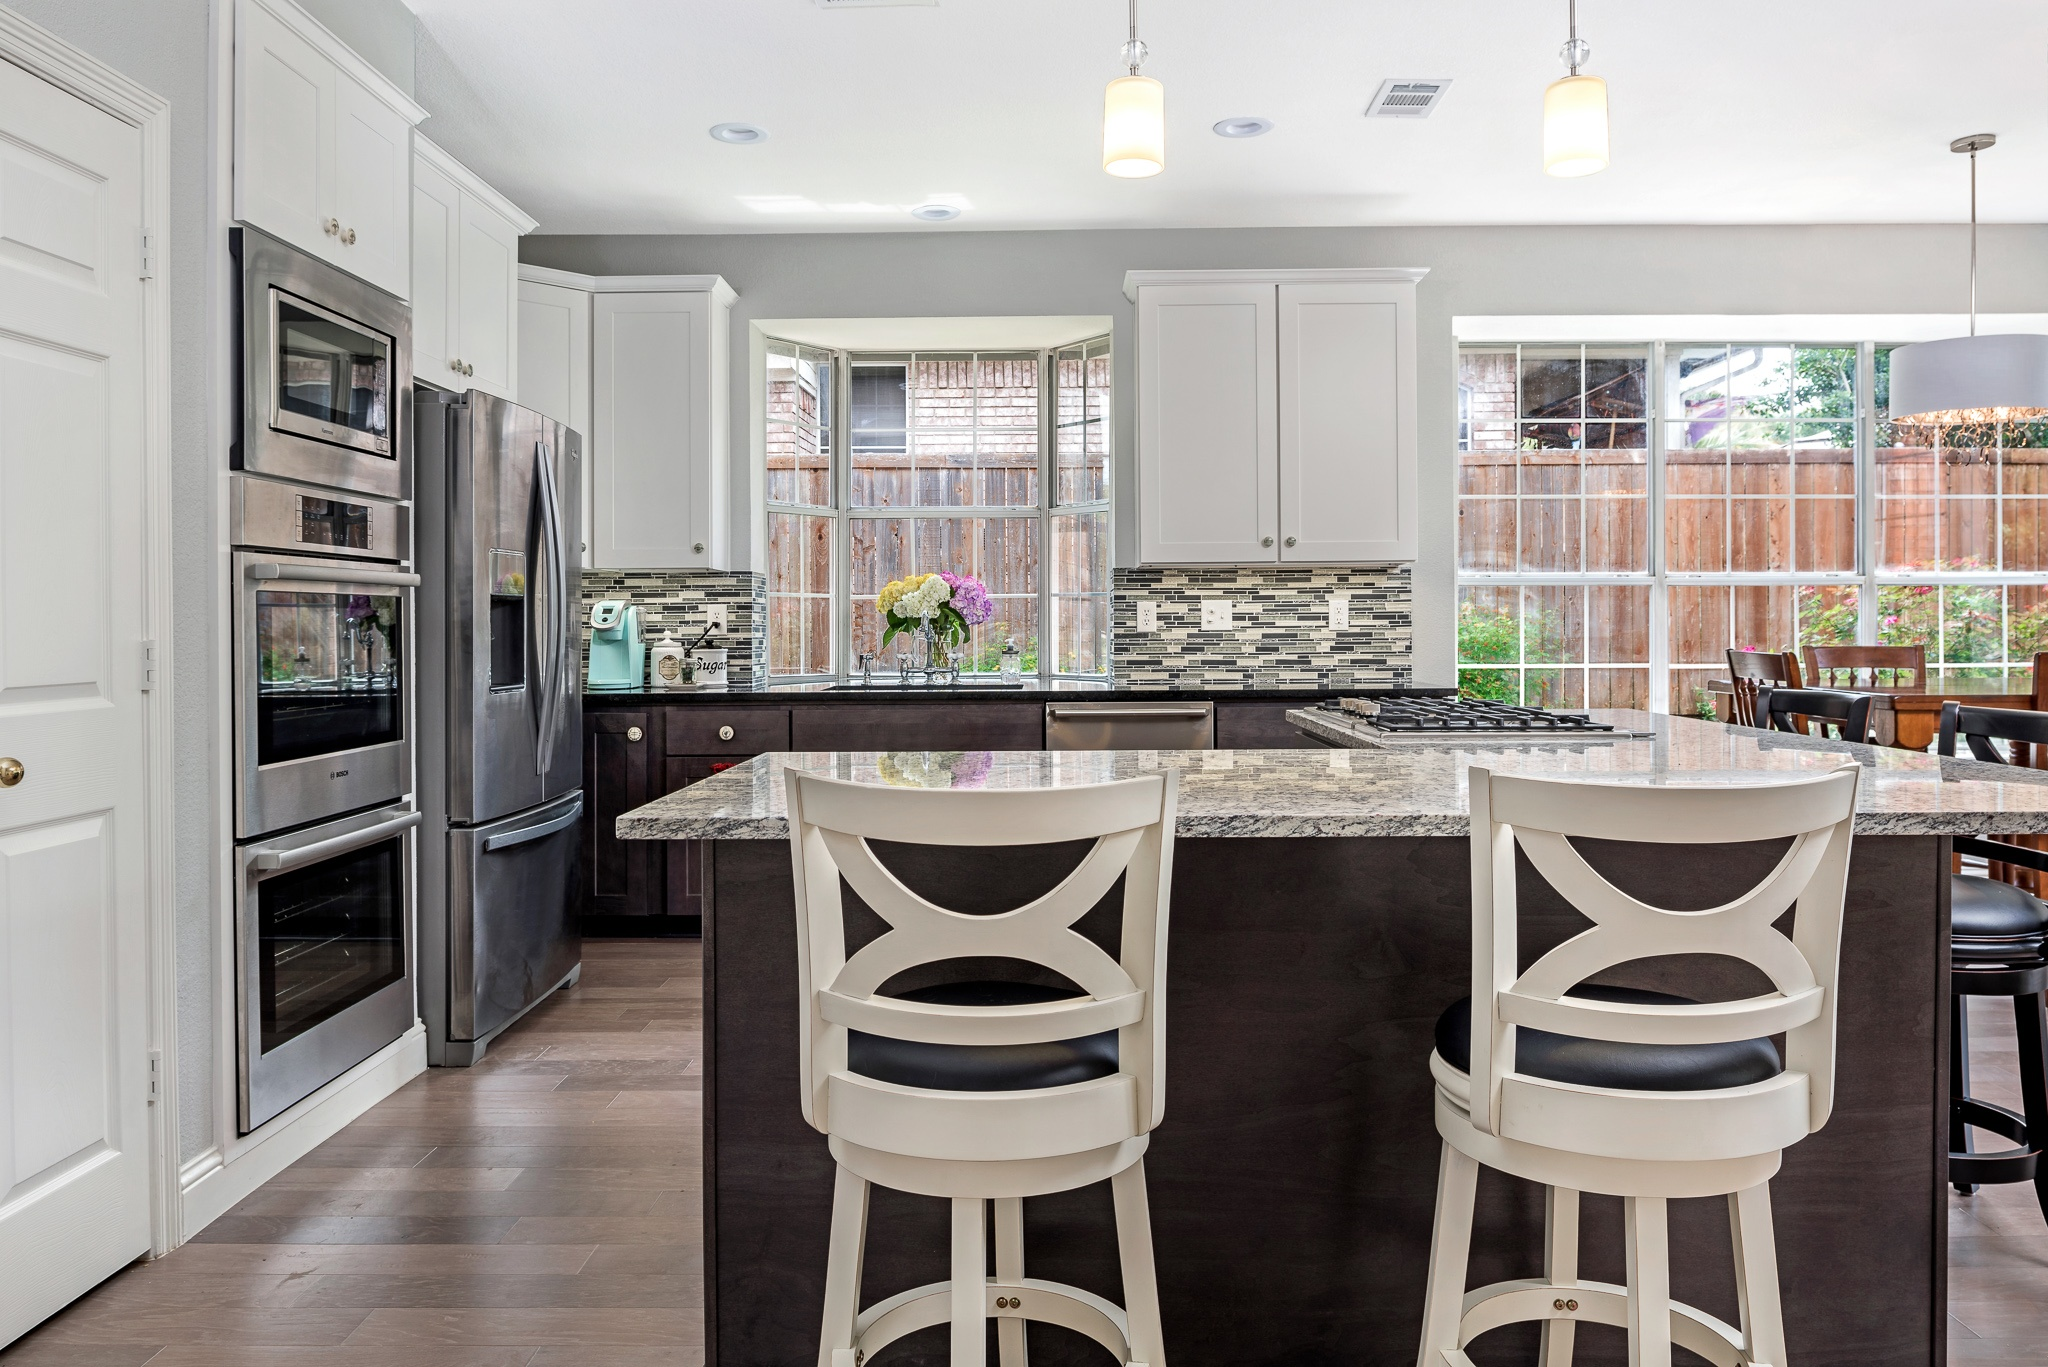 Dallas Kitchen Remodeling Model thaddeus drew remodeling blog | north dallas area | kitchen